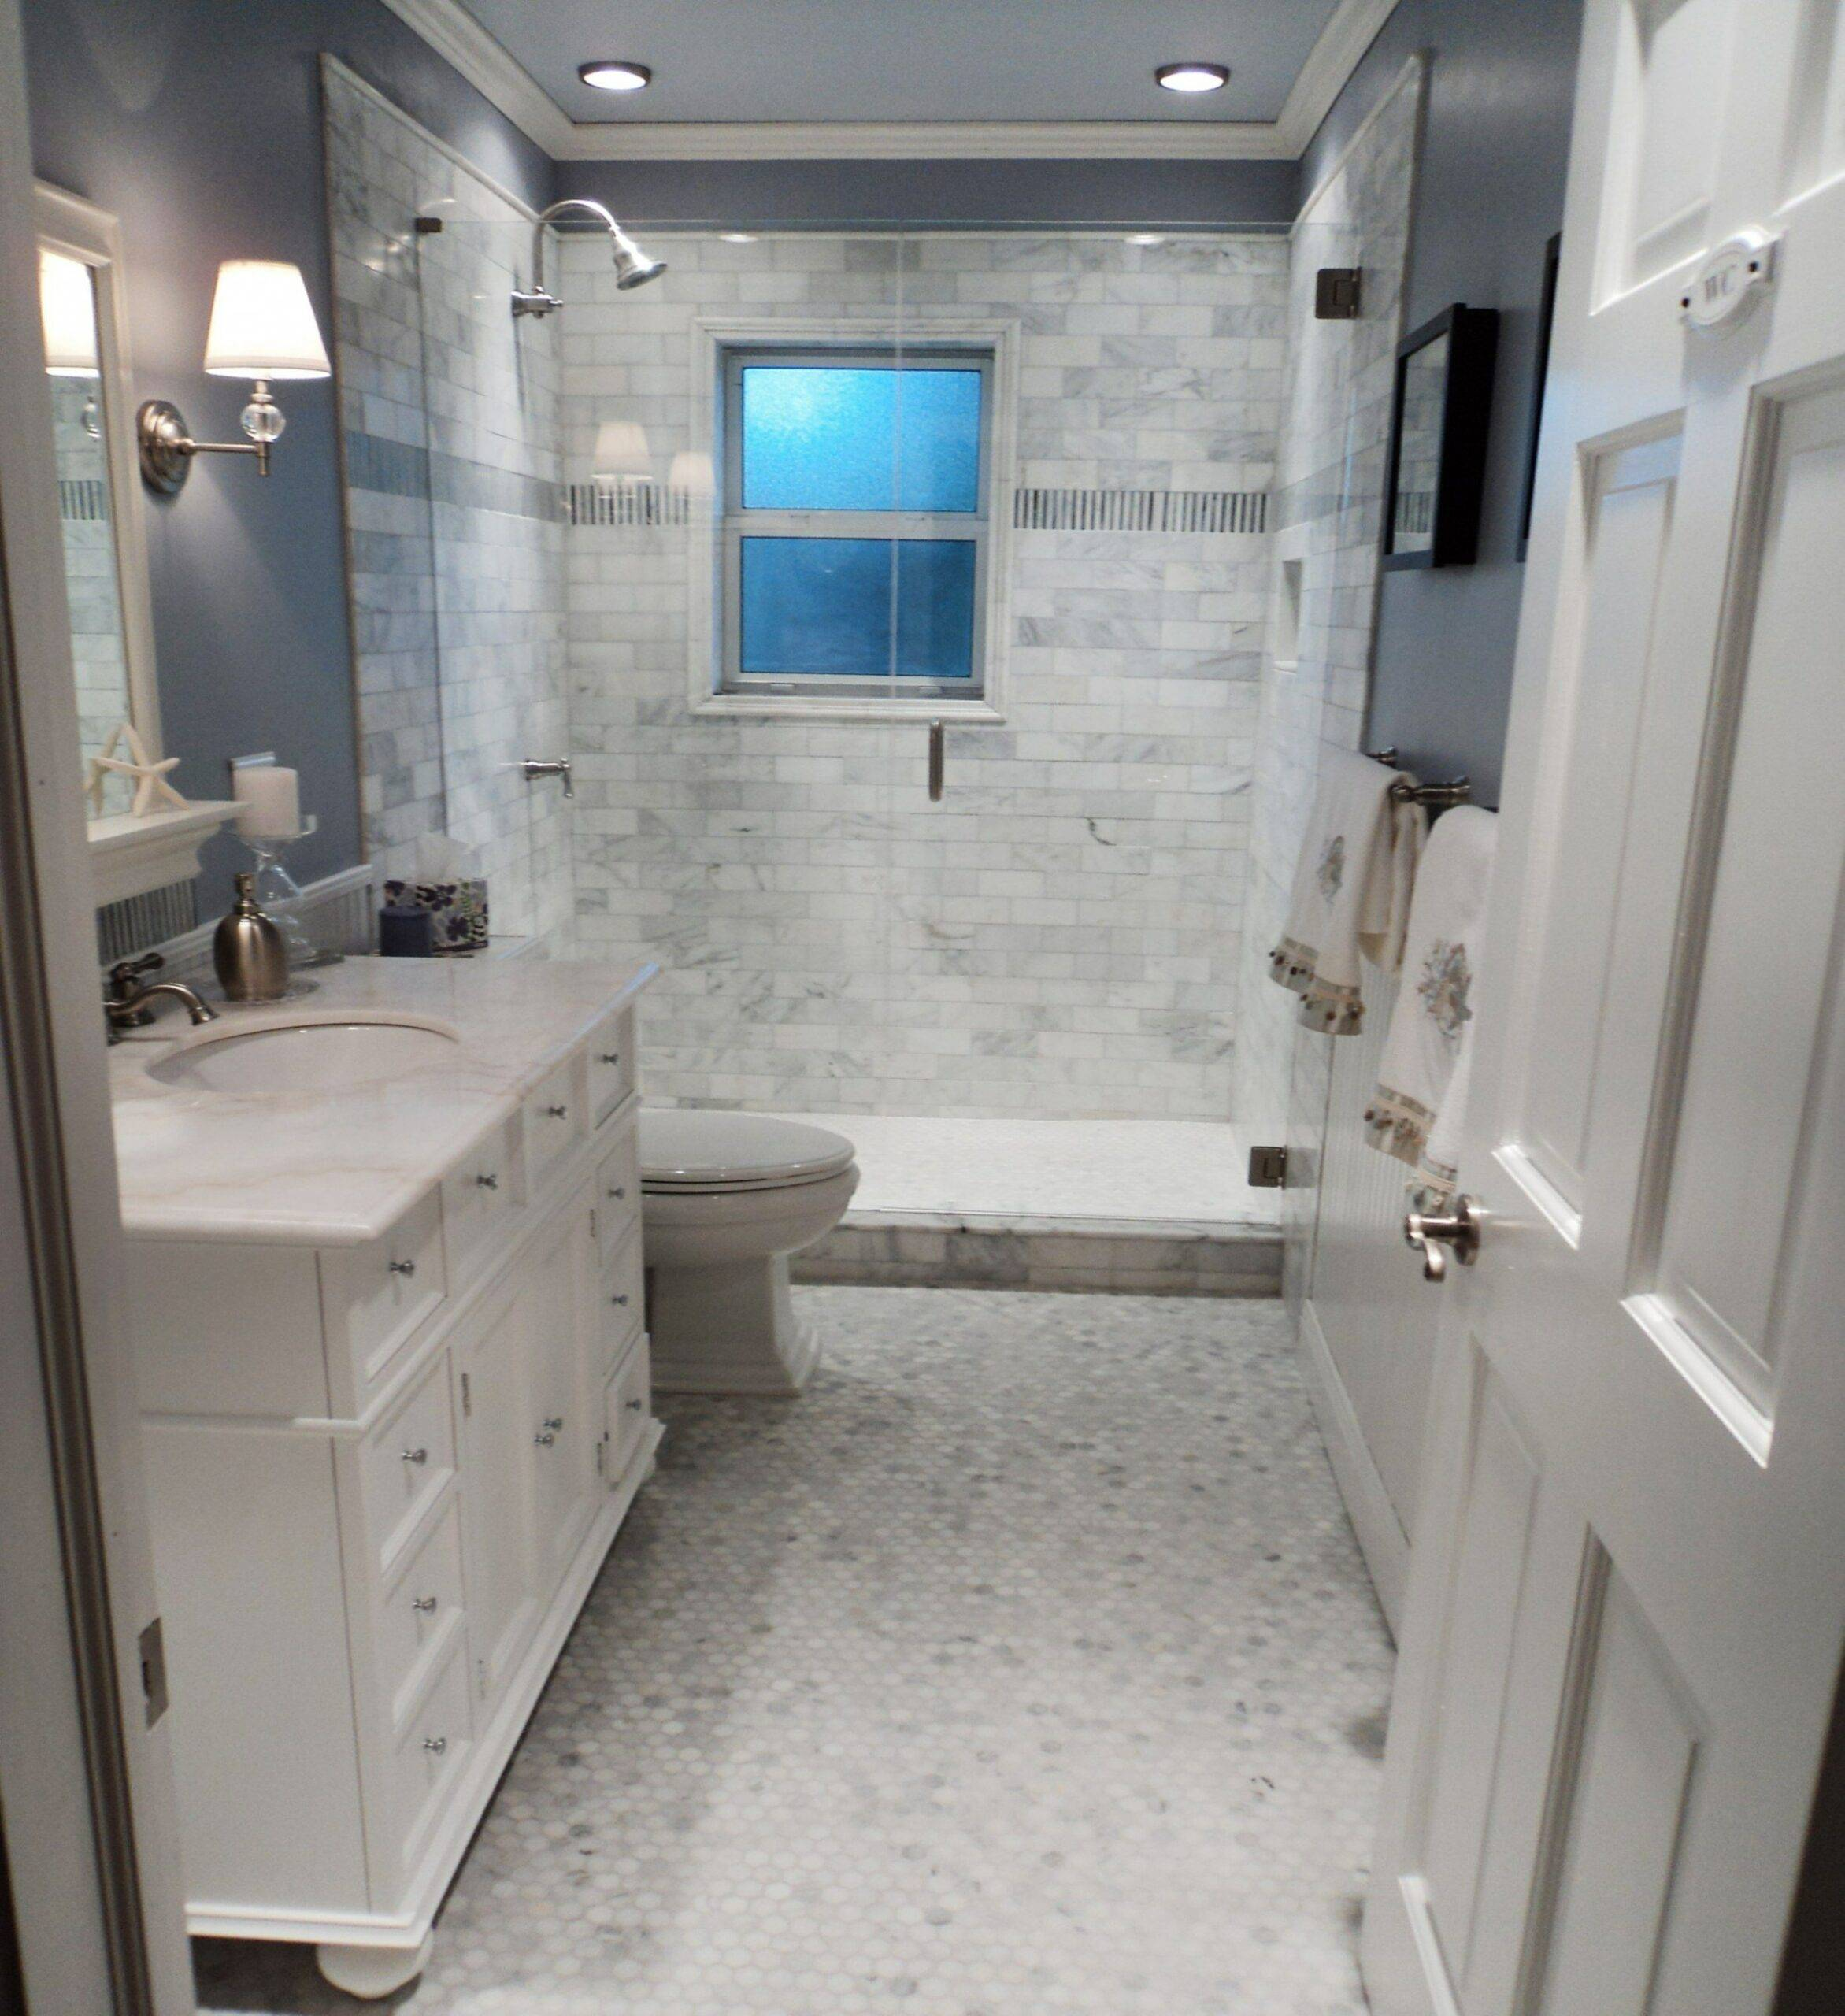 small bathroom ideas image result for 5x10 bathroom pictures of small bathroom ideas scaled